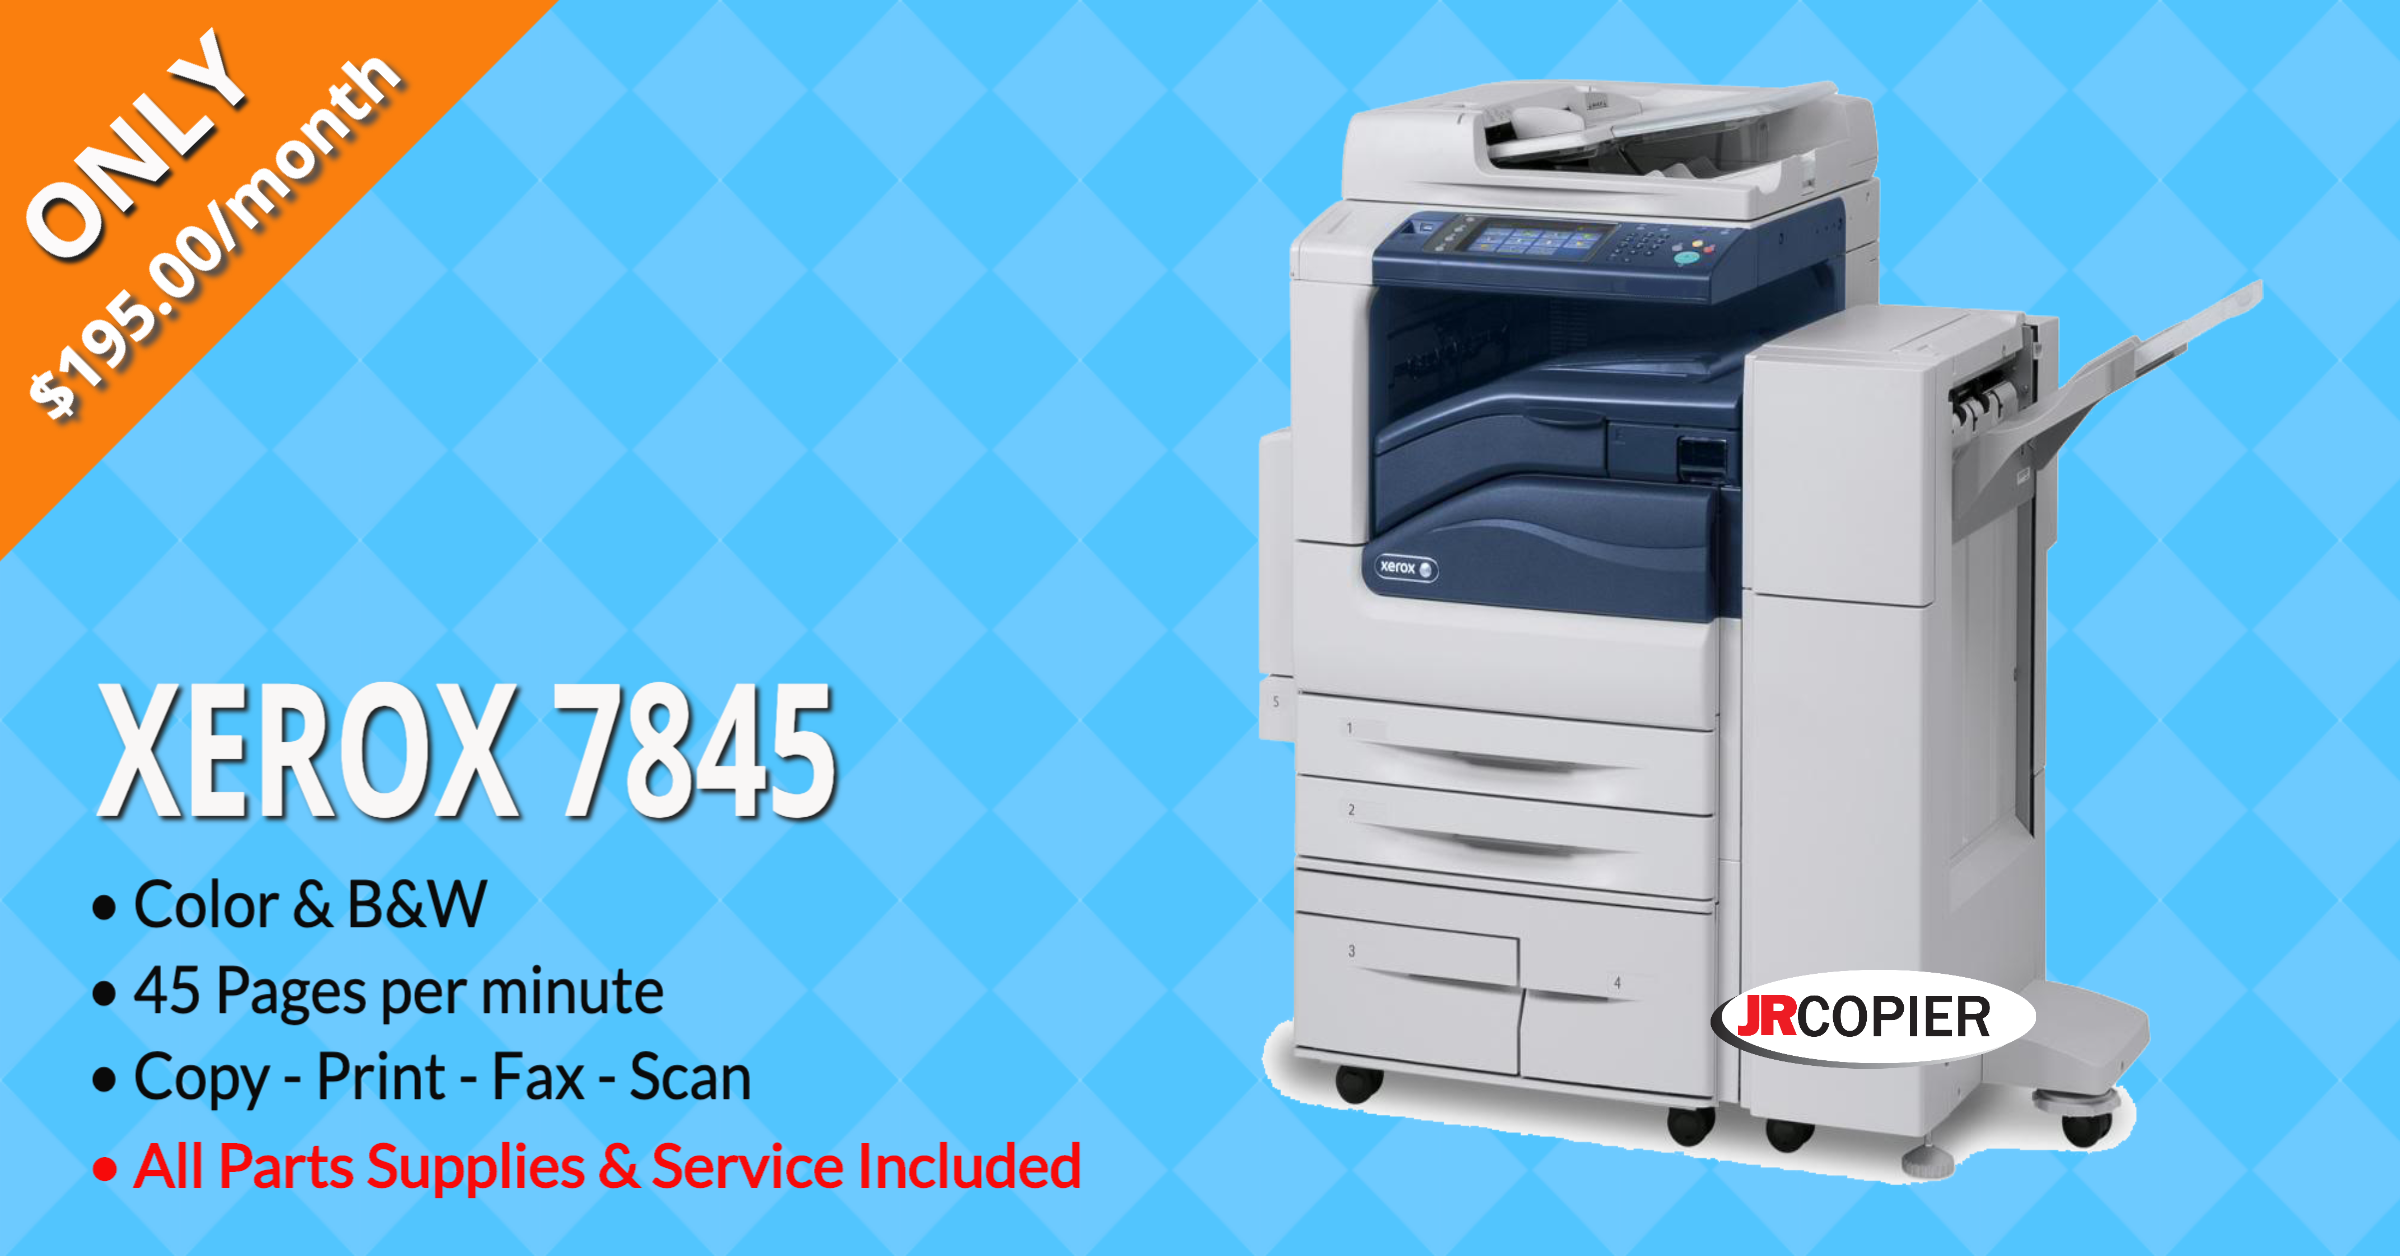 Multifunction Printer Sales 95660, 95841, 95842